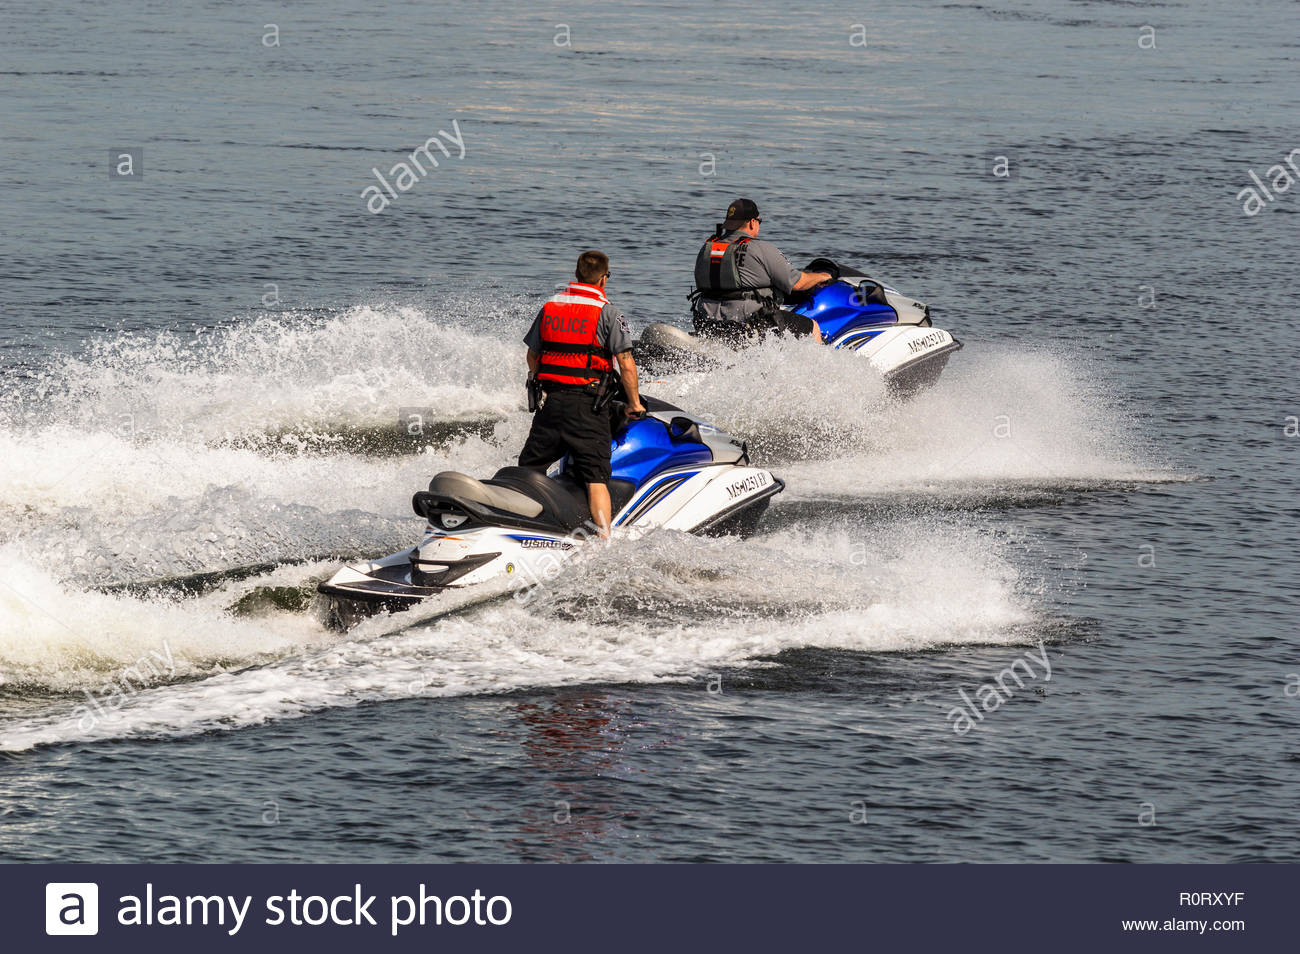 Fairhaven, Massachusetts, USA - June 30, 2018: Police riding personal watercraft crossing Acushnet River toward Fairhaven waterfront - Stock Image